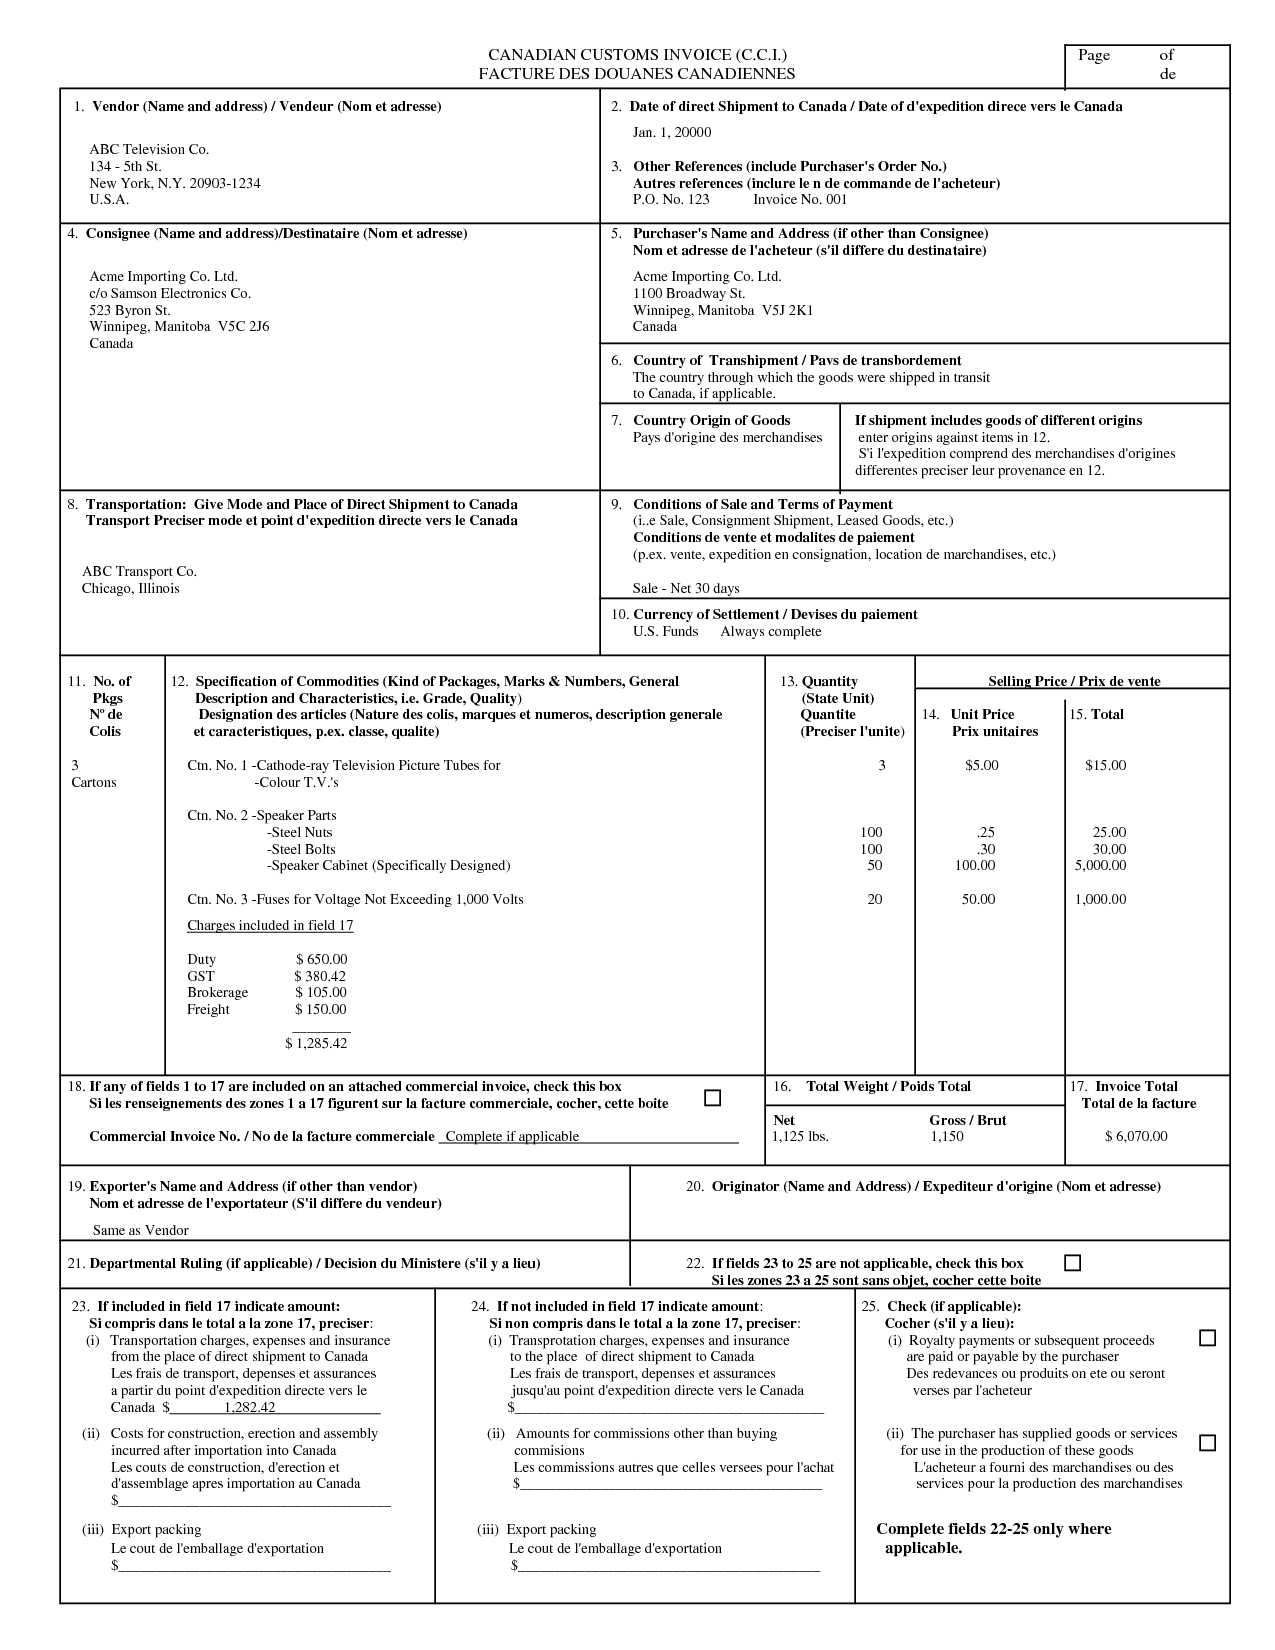 Canada Customs Invoice Form